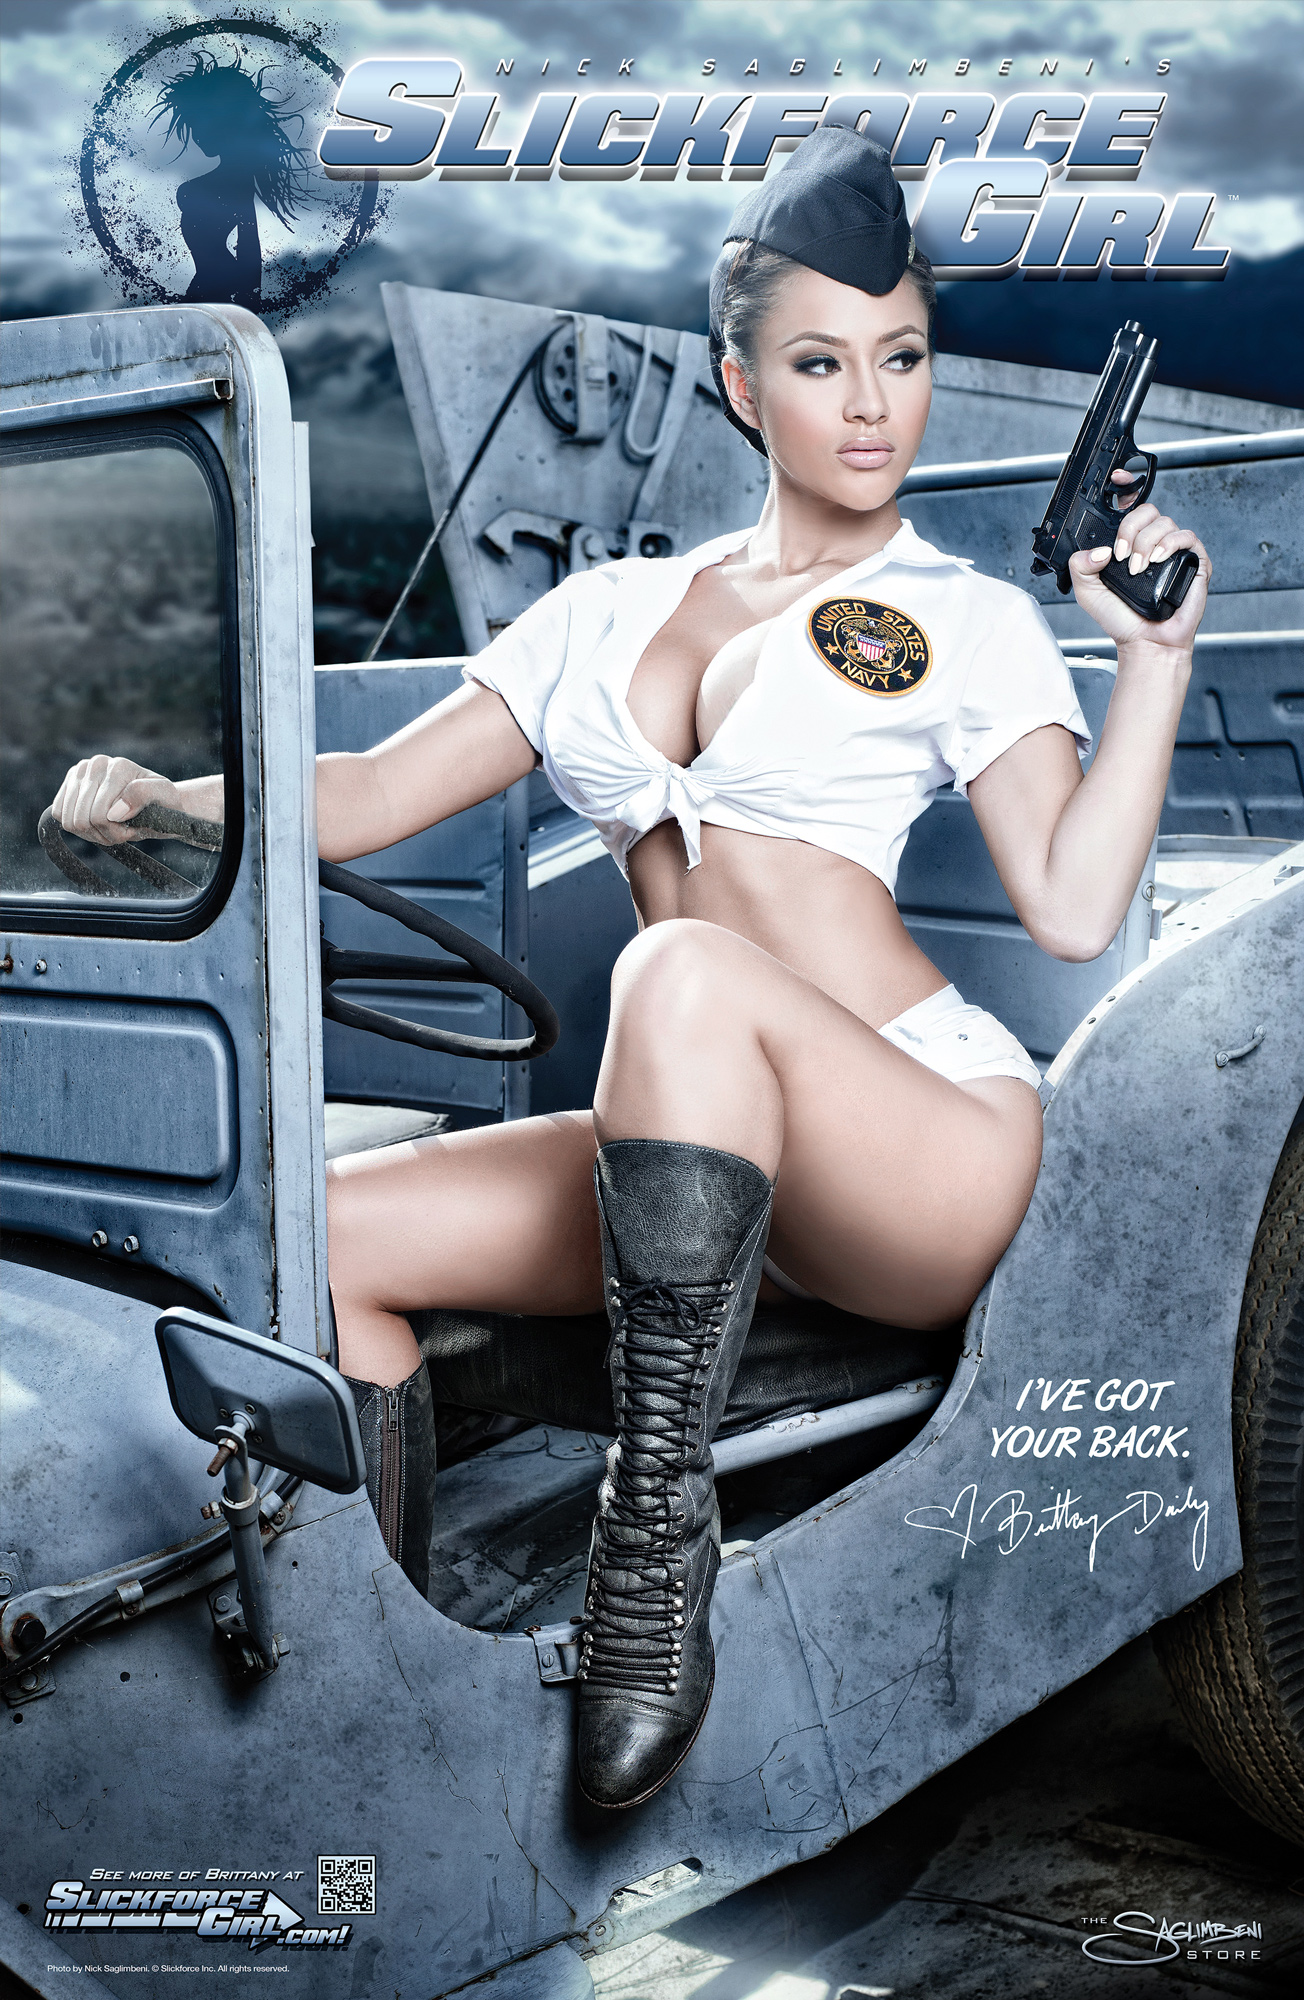 Has Sexy army pin up girls pity, that